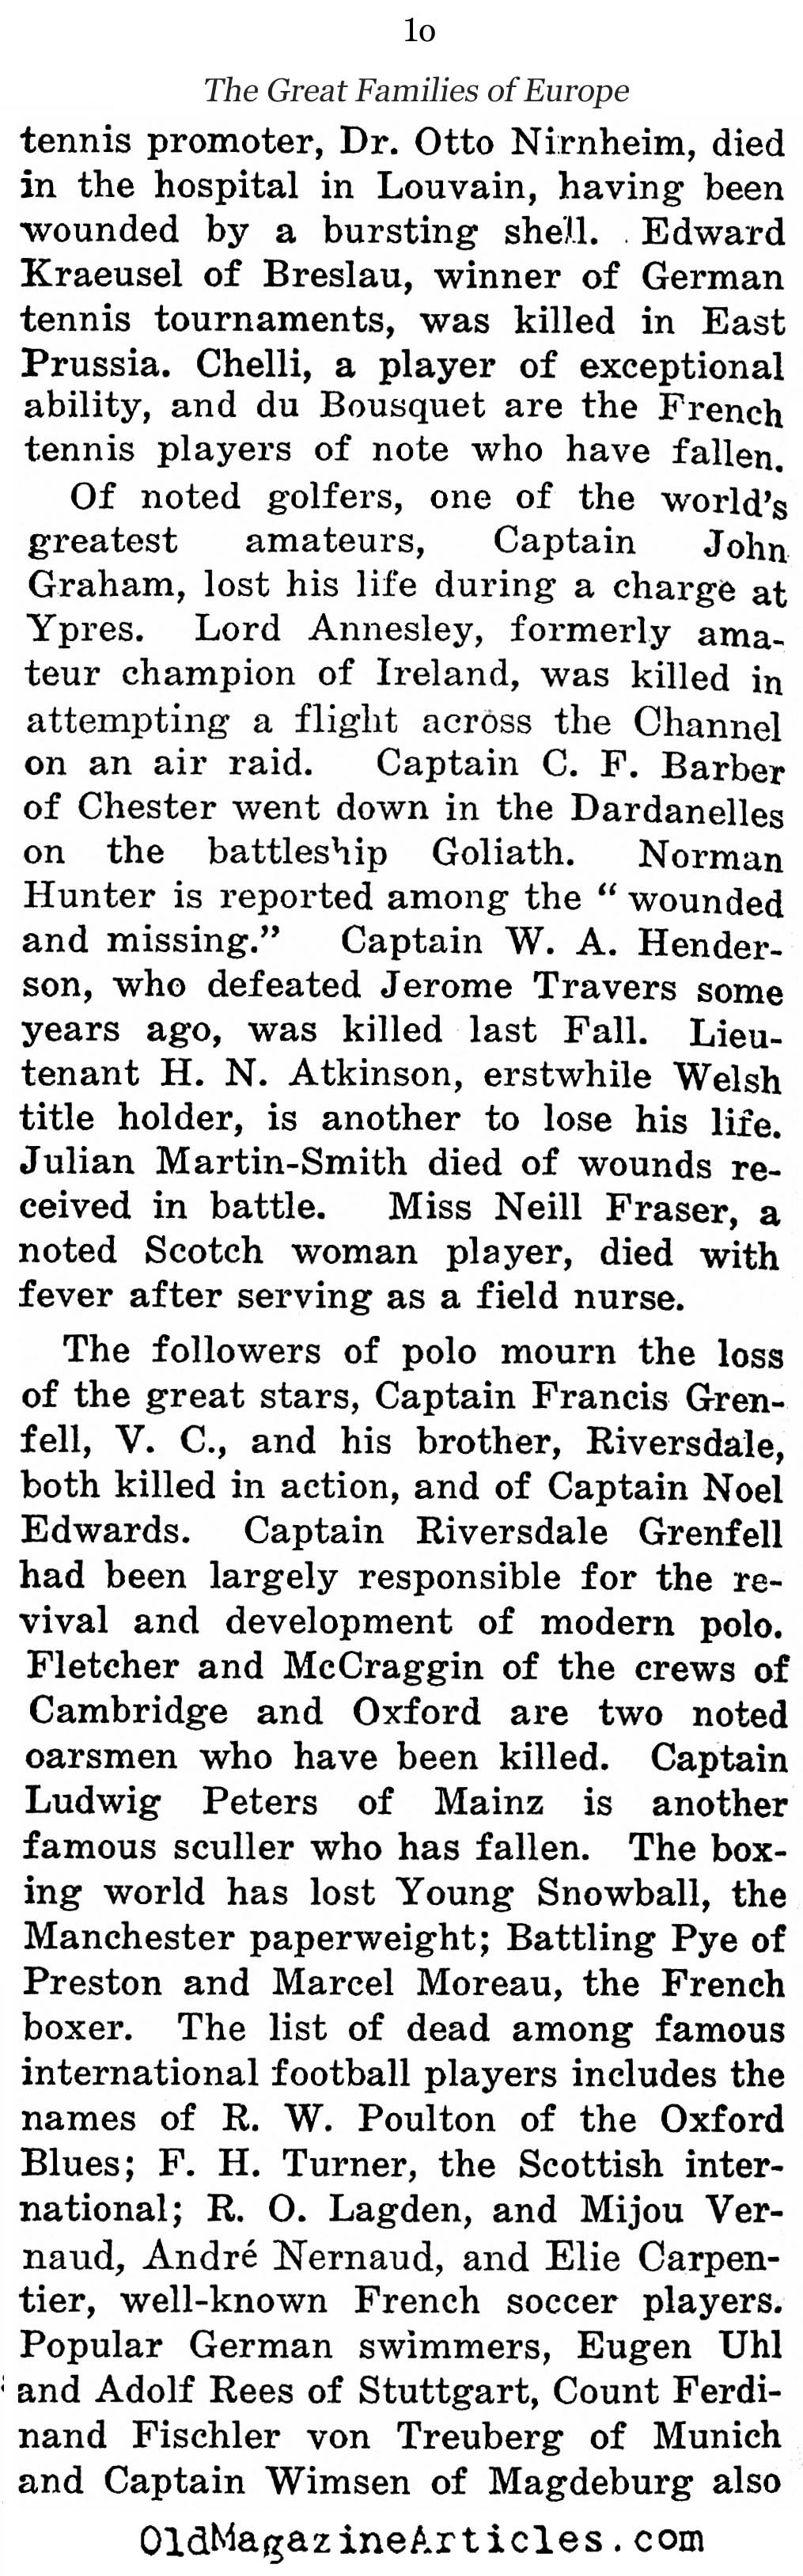 The Slaughter of the Aristocrats (NY Times, 1915)